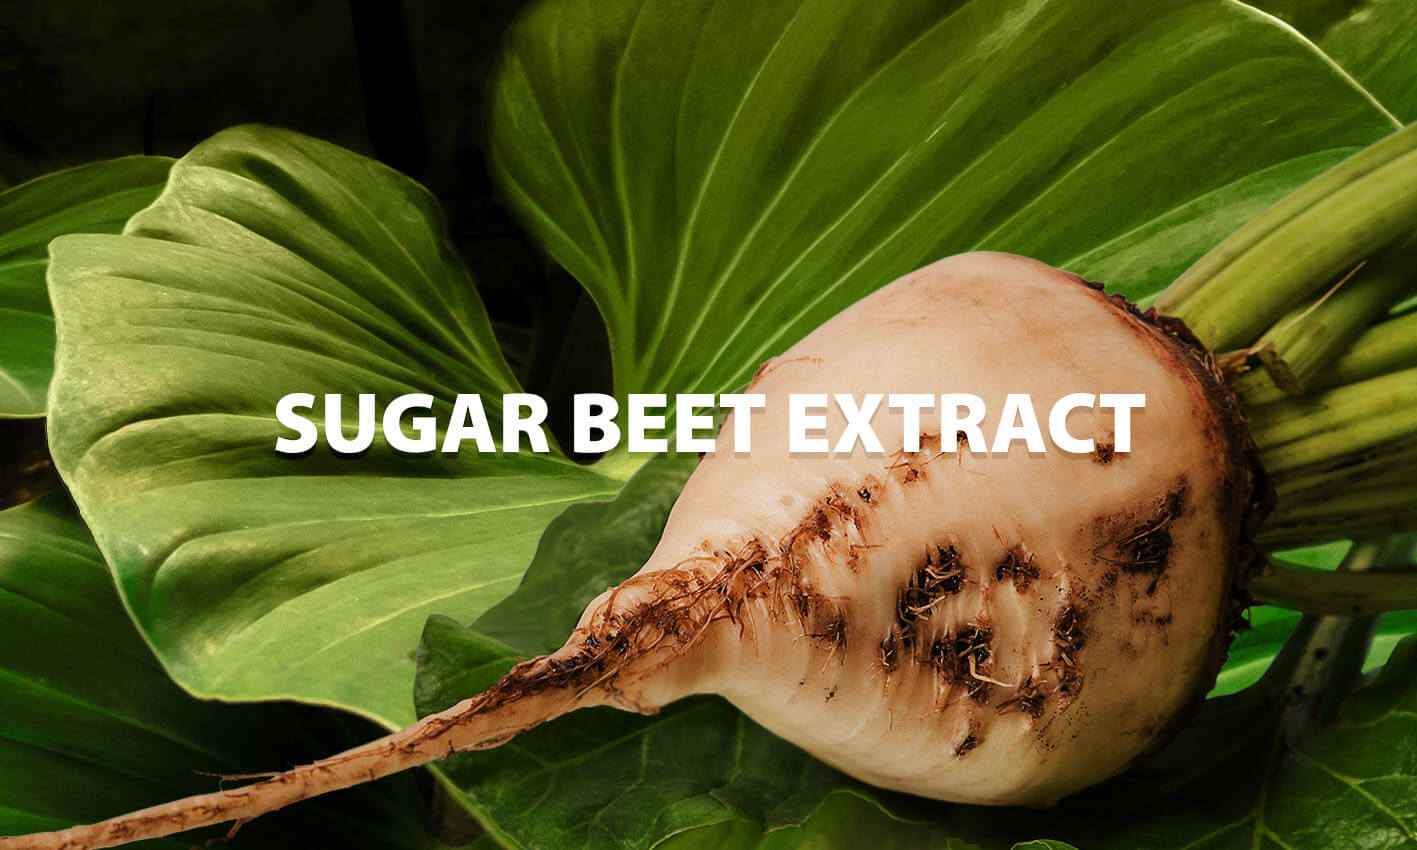 Sugar Beet Extract acts as an Osmolyte